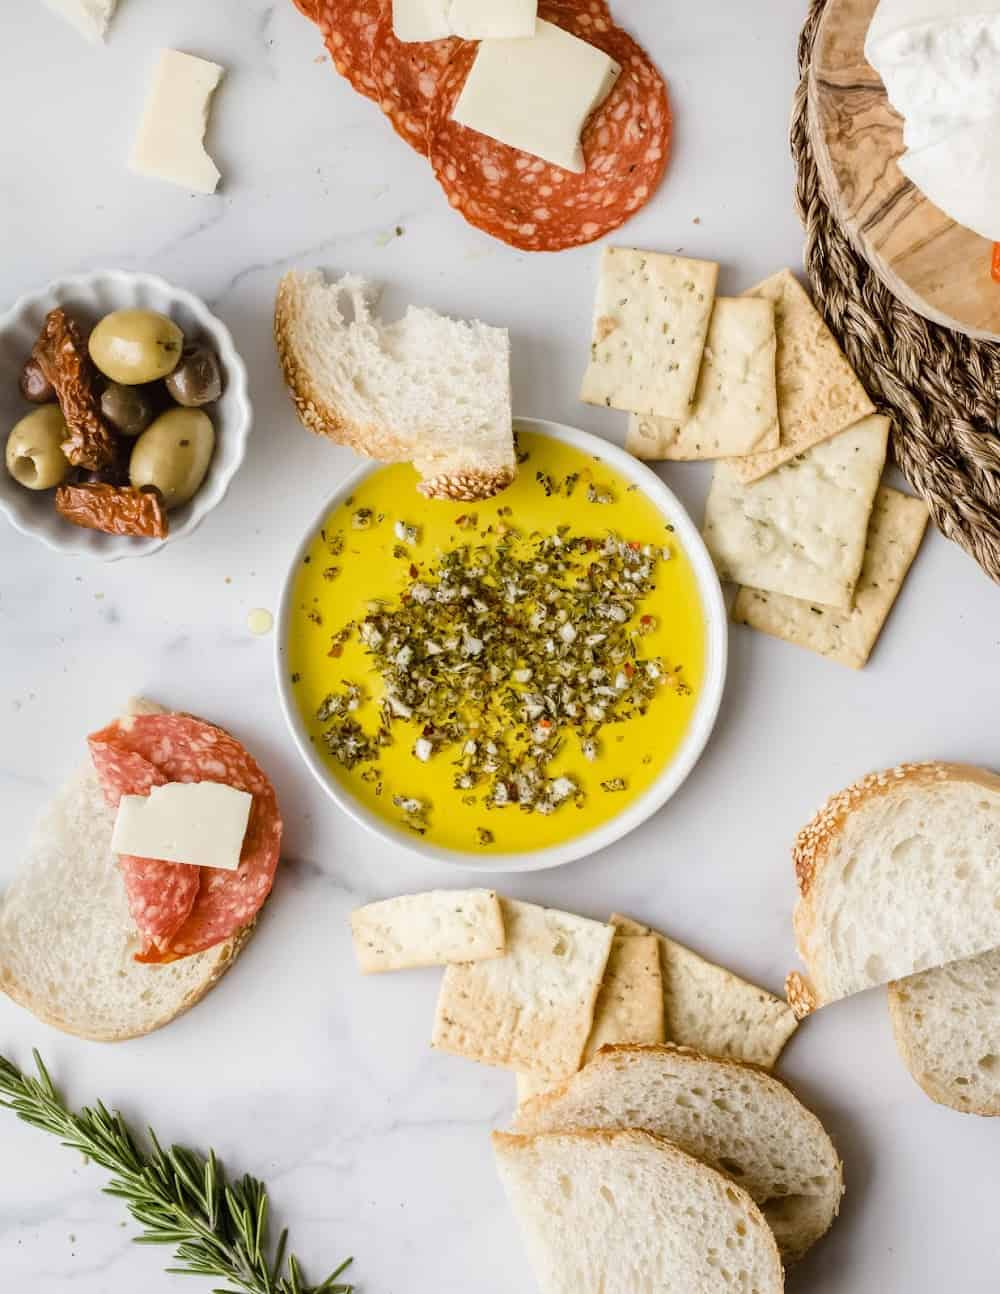 Shallow bowl of olive oil herb dip on a white platter with bread, olives and cured meats